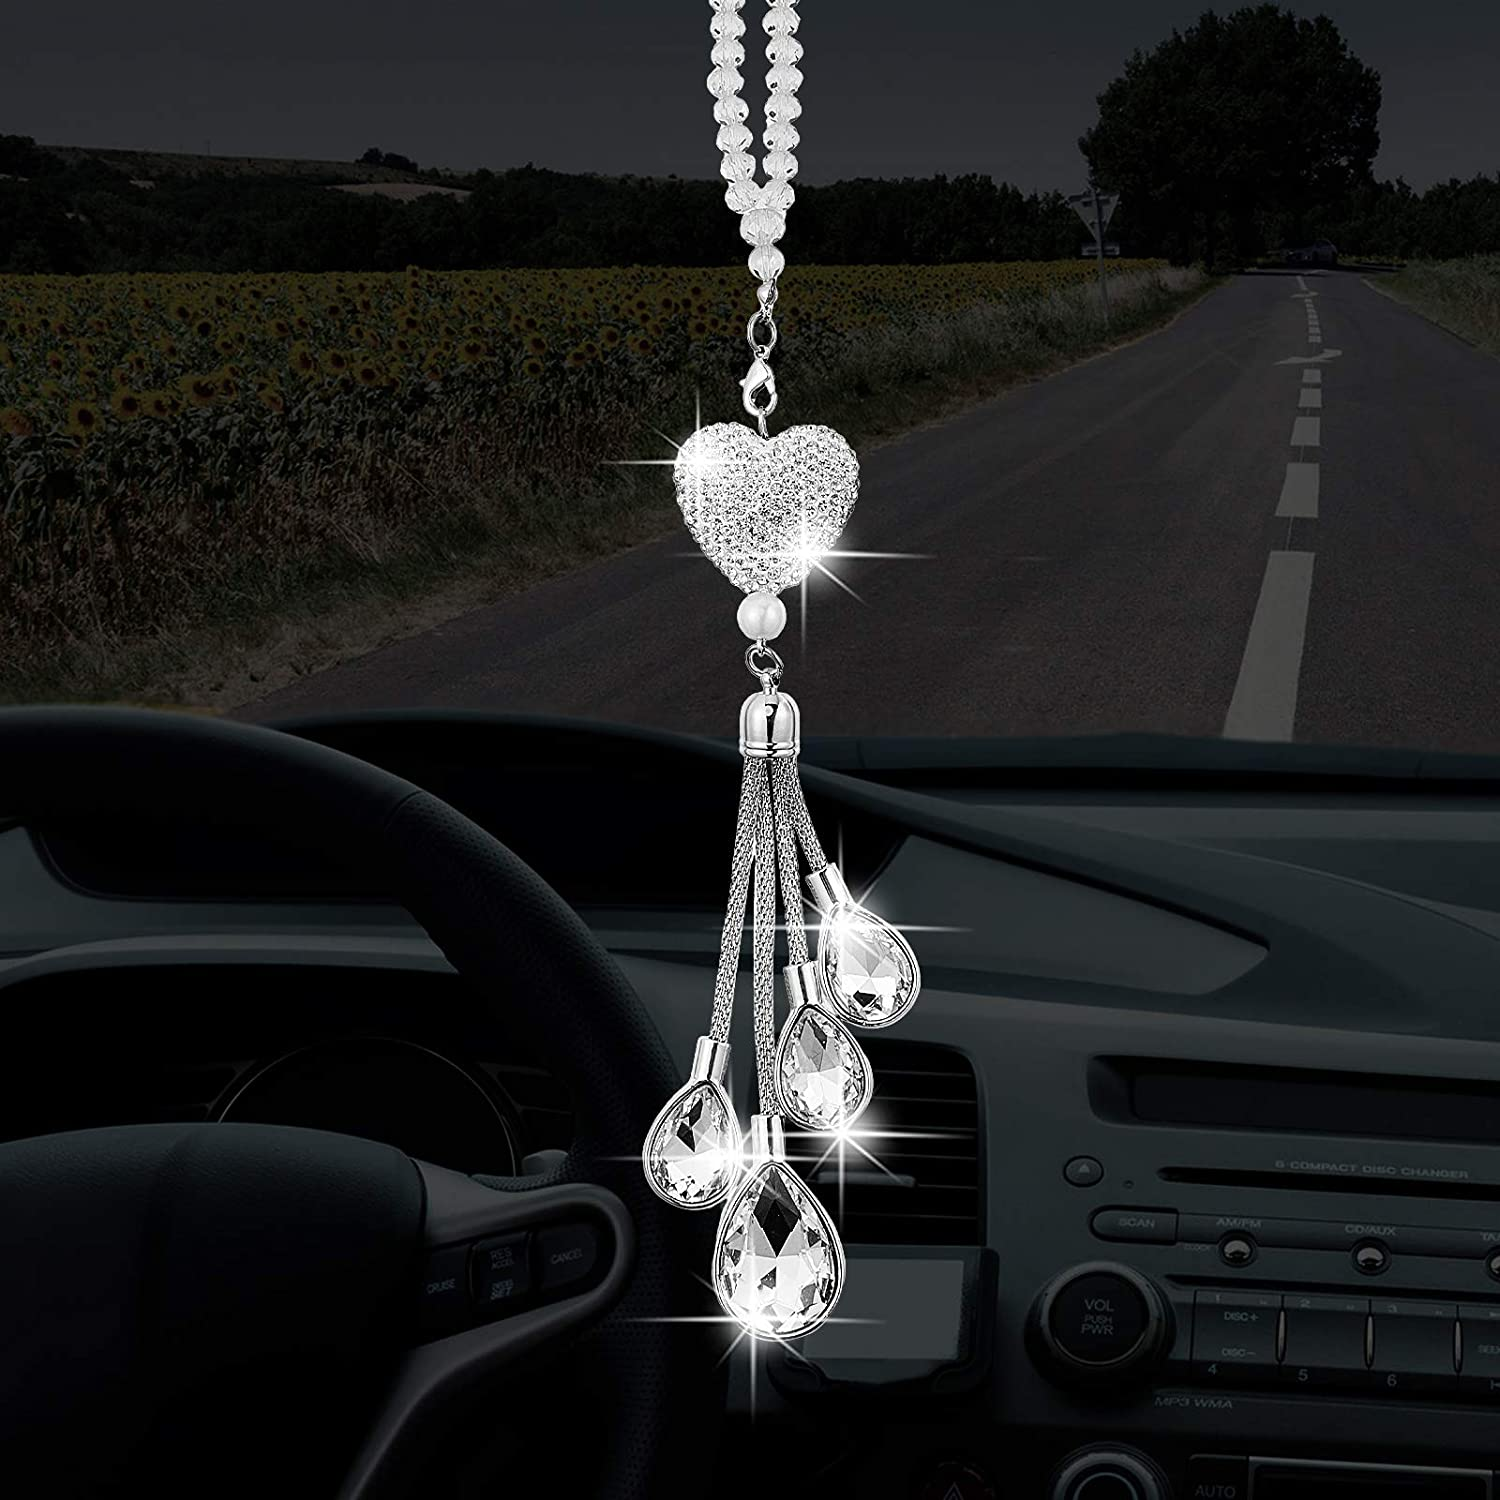 Bling White Heart Diamond Car Accessories, Silver-White Crystal Car Rear View Mirror Charms Car Decoration Decor, Lucky Hanging Interior Ornament Pendant